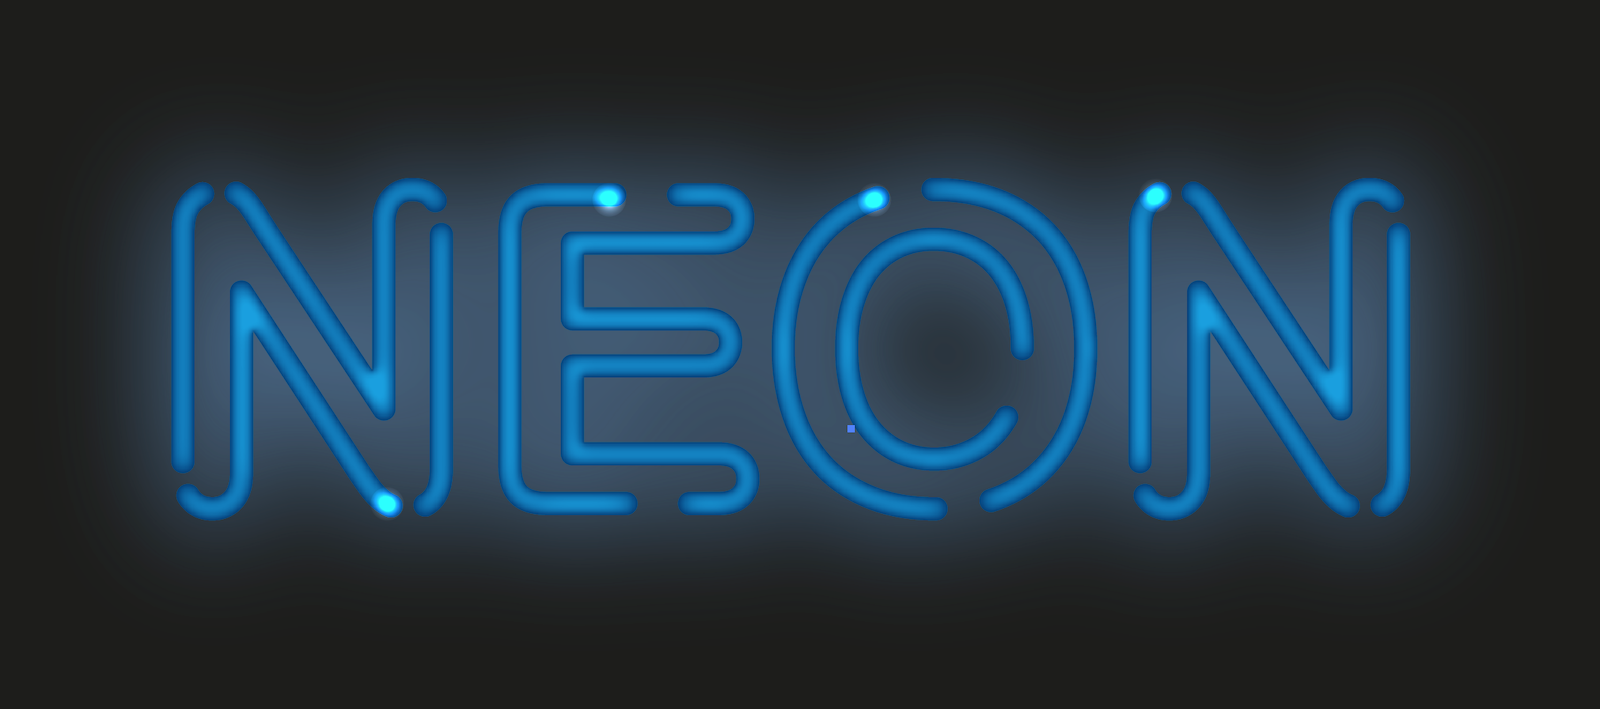 Create Neon Text Effect With Stylism And Adobe Illustrator Astute Graphics